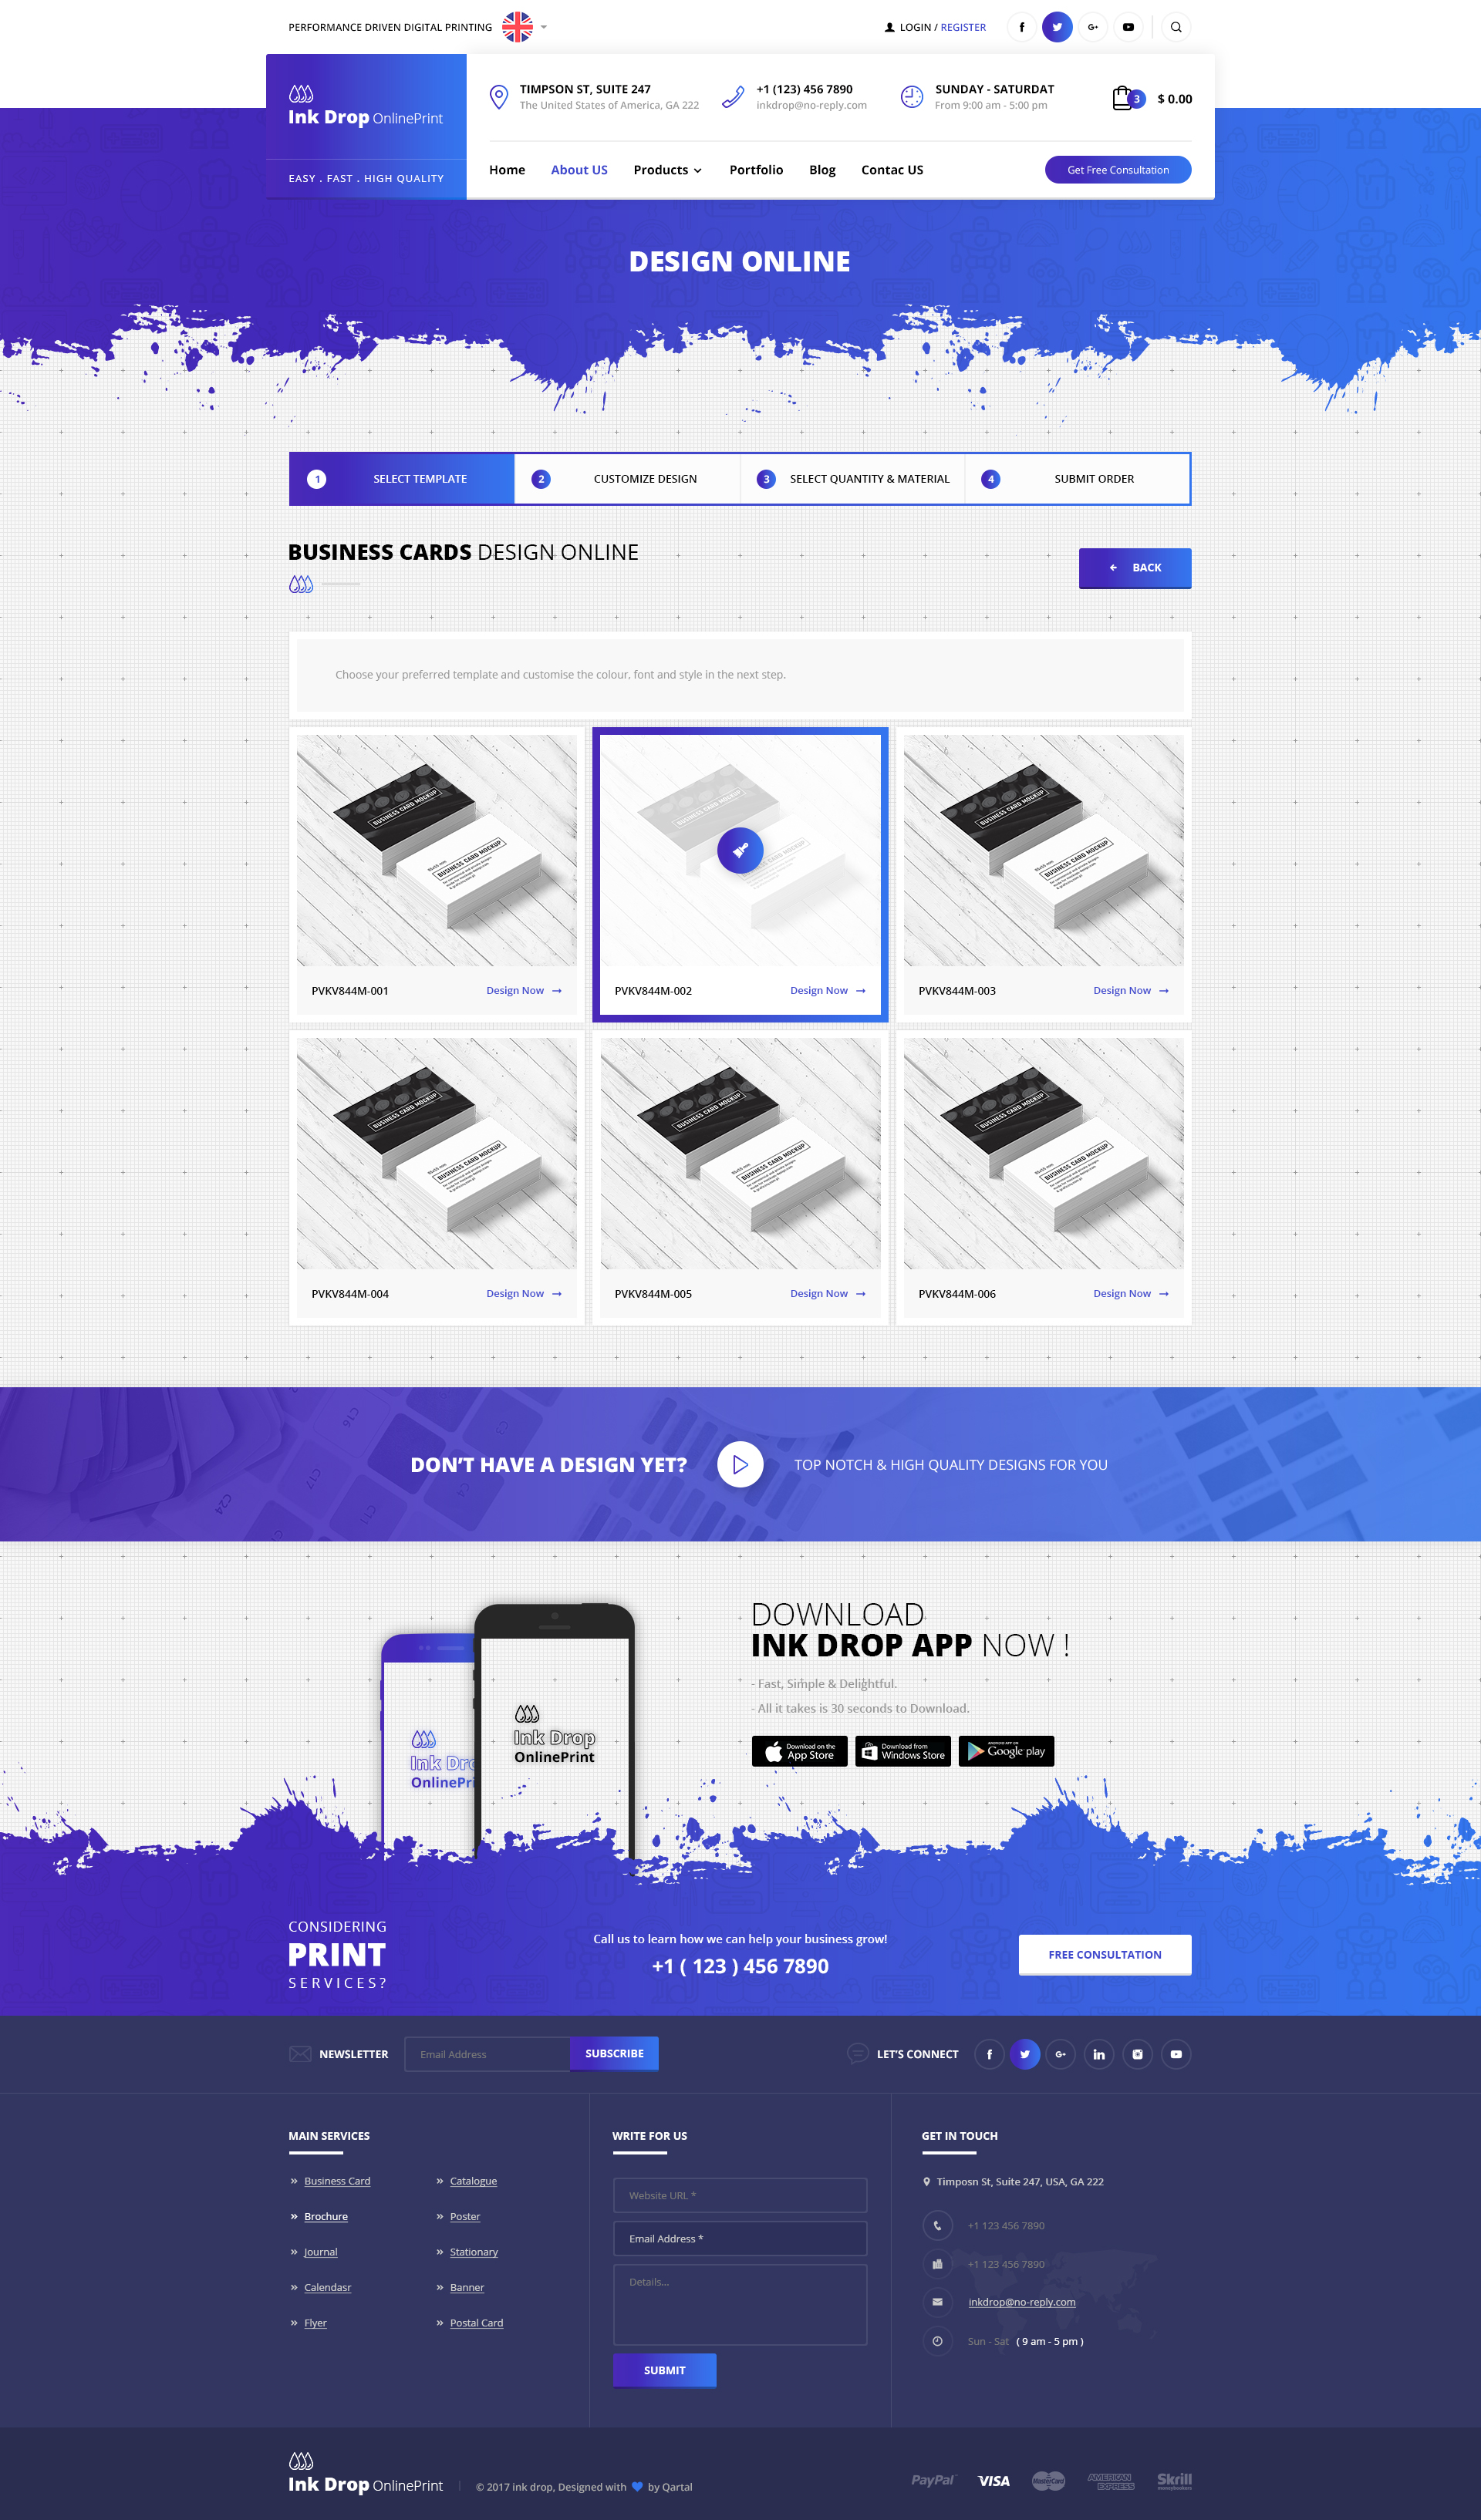 Attractive Gesucht Signs Template Component - FORTSETZUNG ...